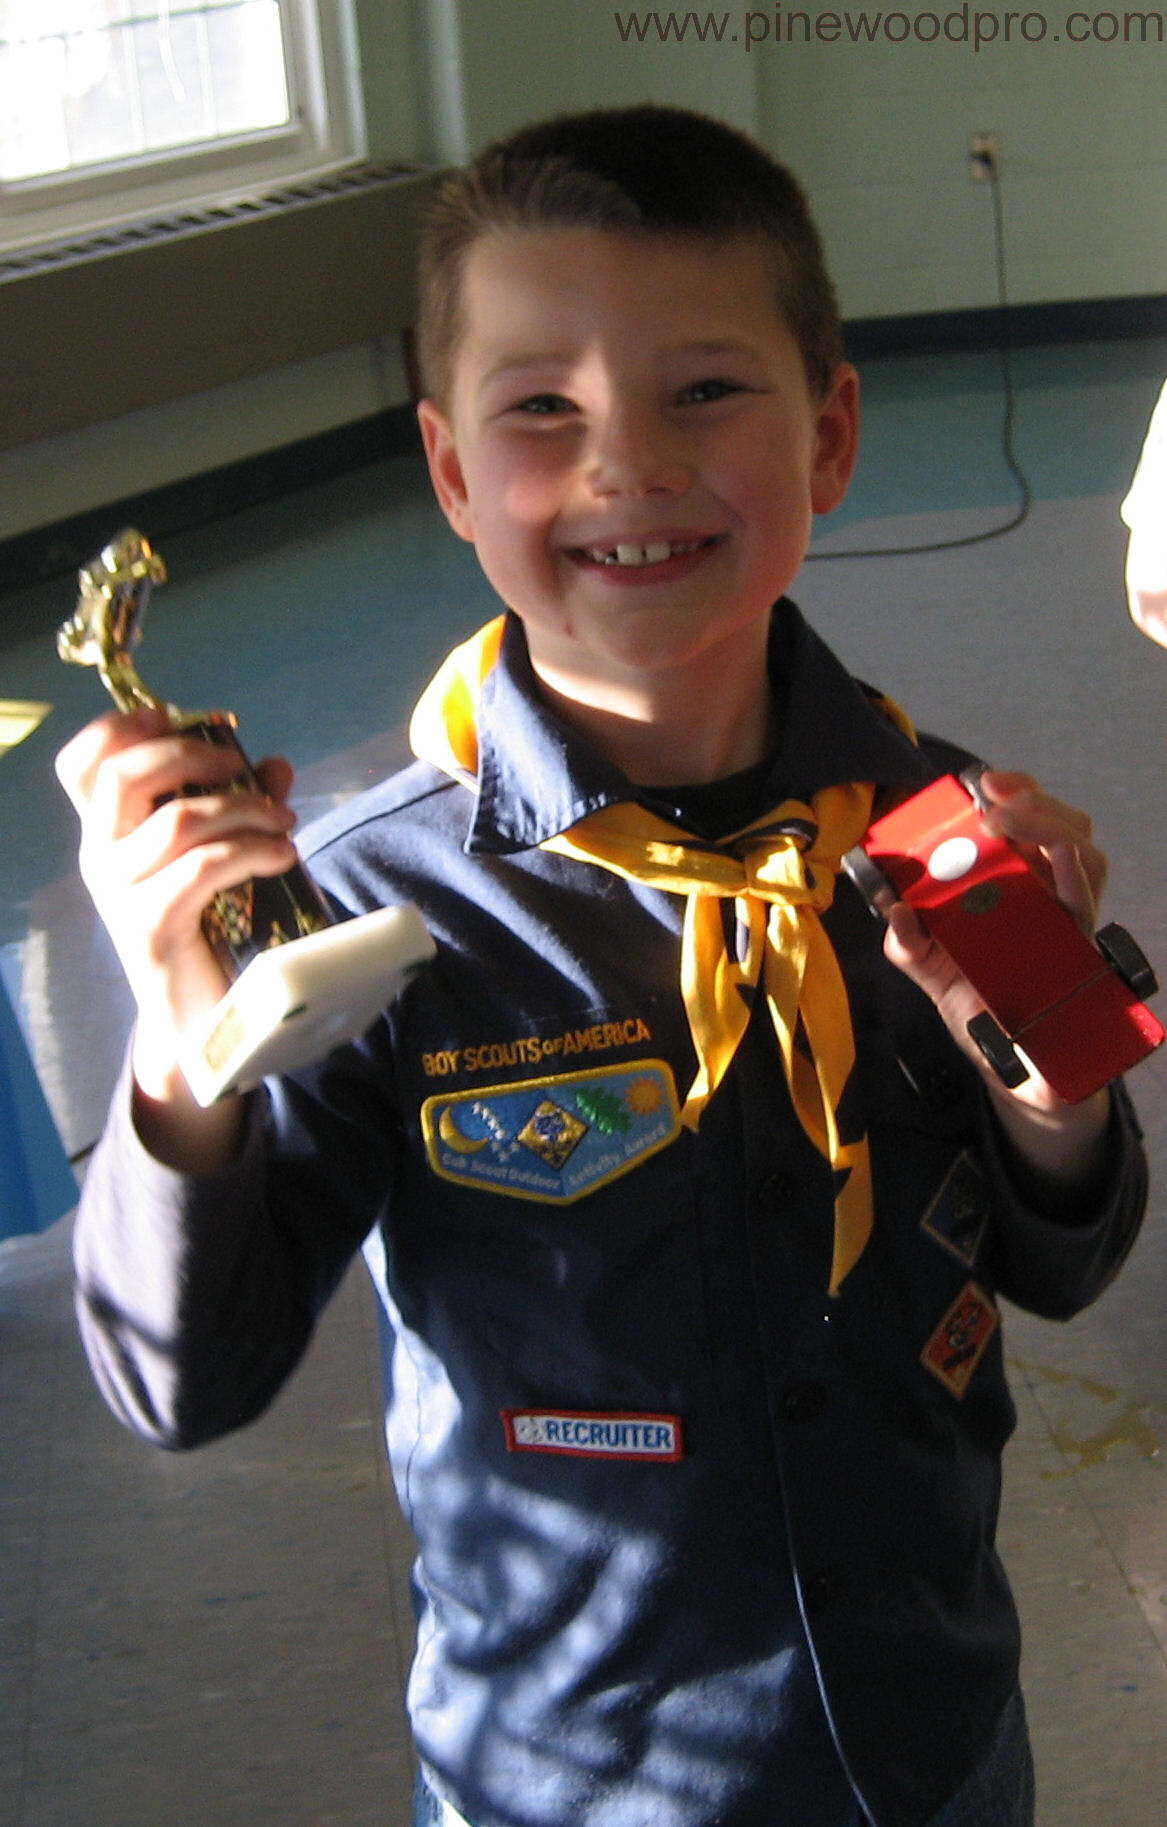 Boy Scout winner with Car and Trophy